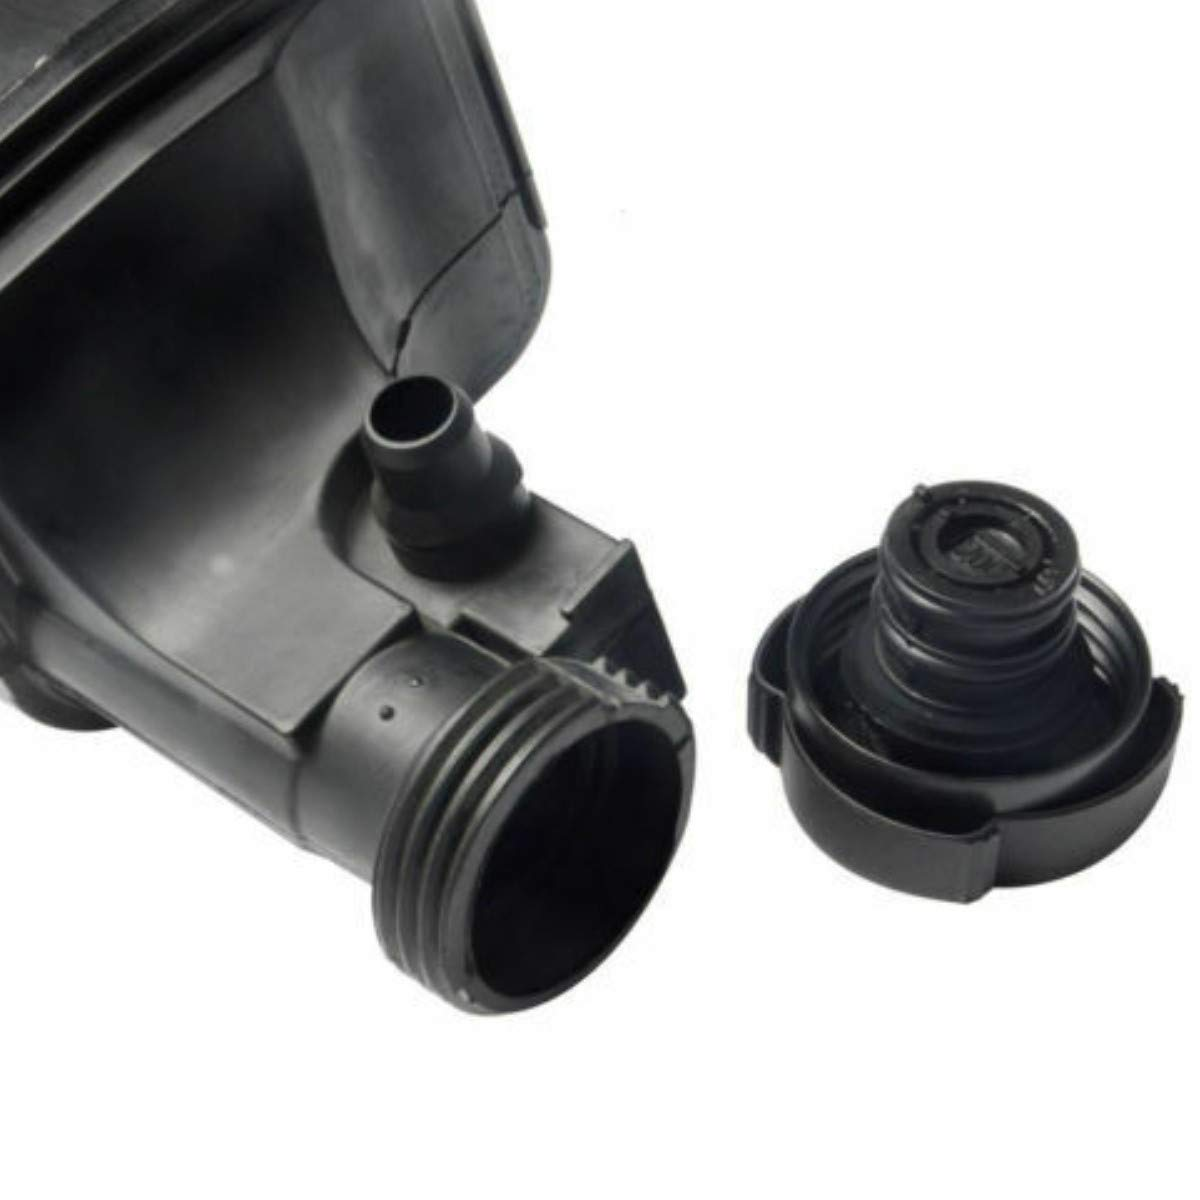 Coolant Recovery Reservoir Expansion Tank with Cap and Sensor for BMW X3 X5 320i 325i 328i 330i